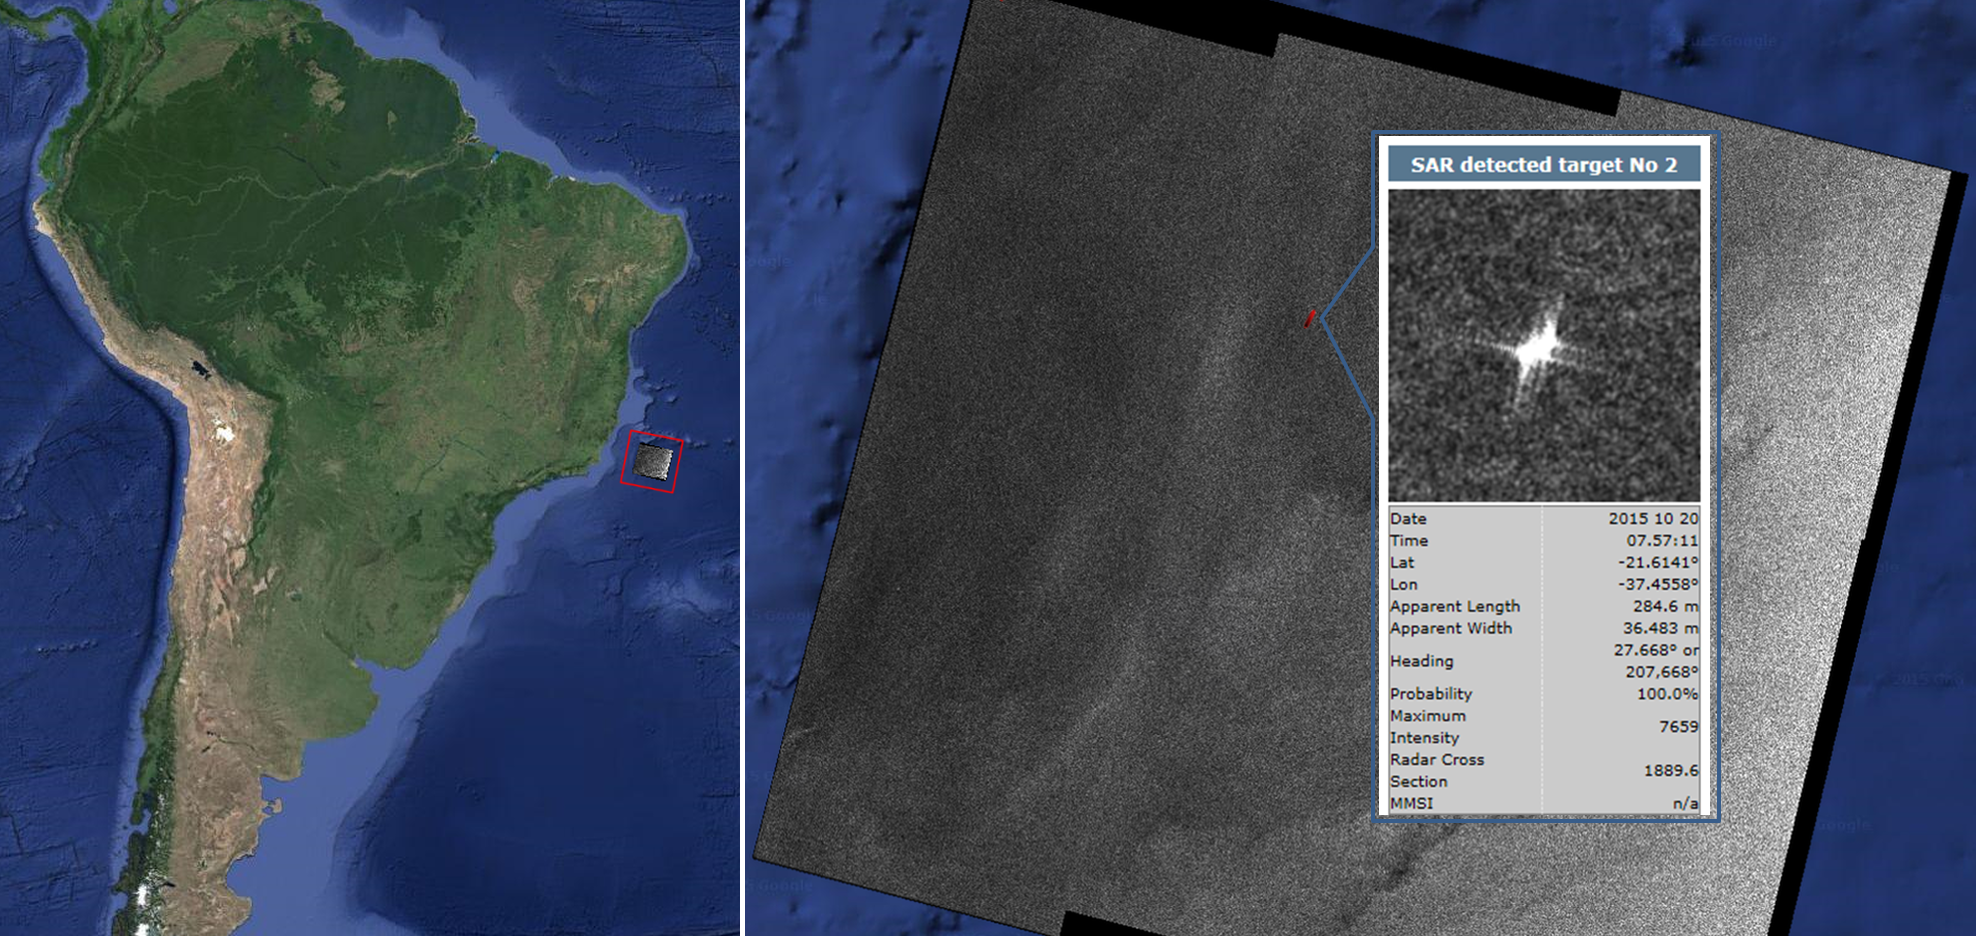 Radar Scans Beamed To Earth Via Laser Can See Ships In Almost Real-Time